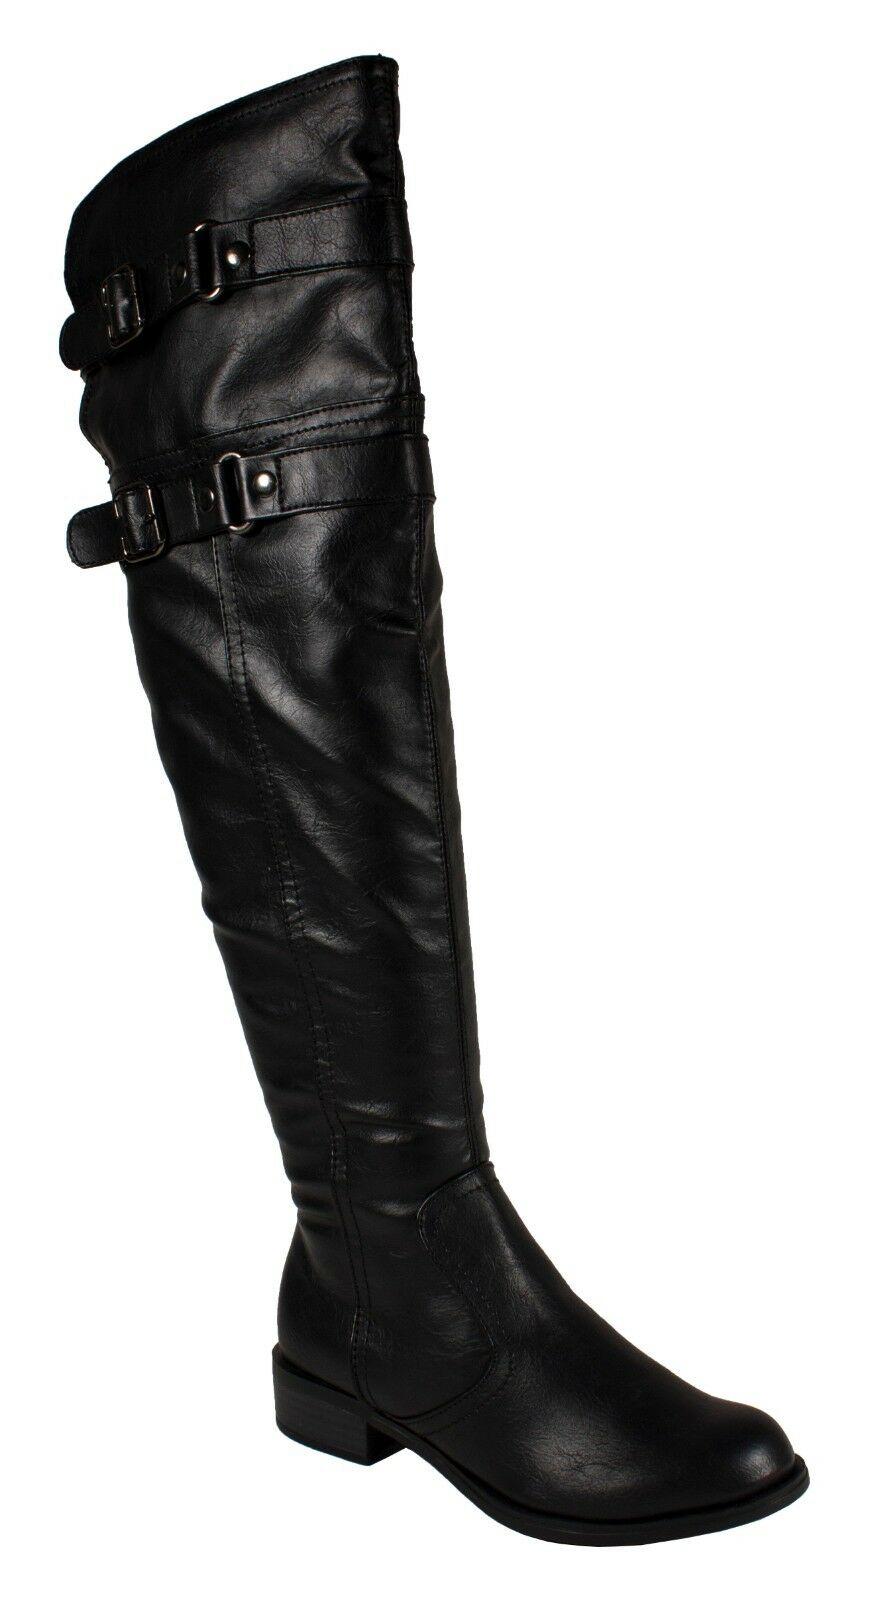 RIDE! Soda Women's Double Buckle Straps Over-the-knee Riding Boots